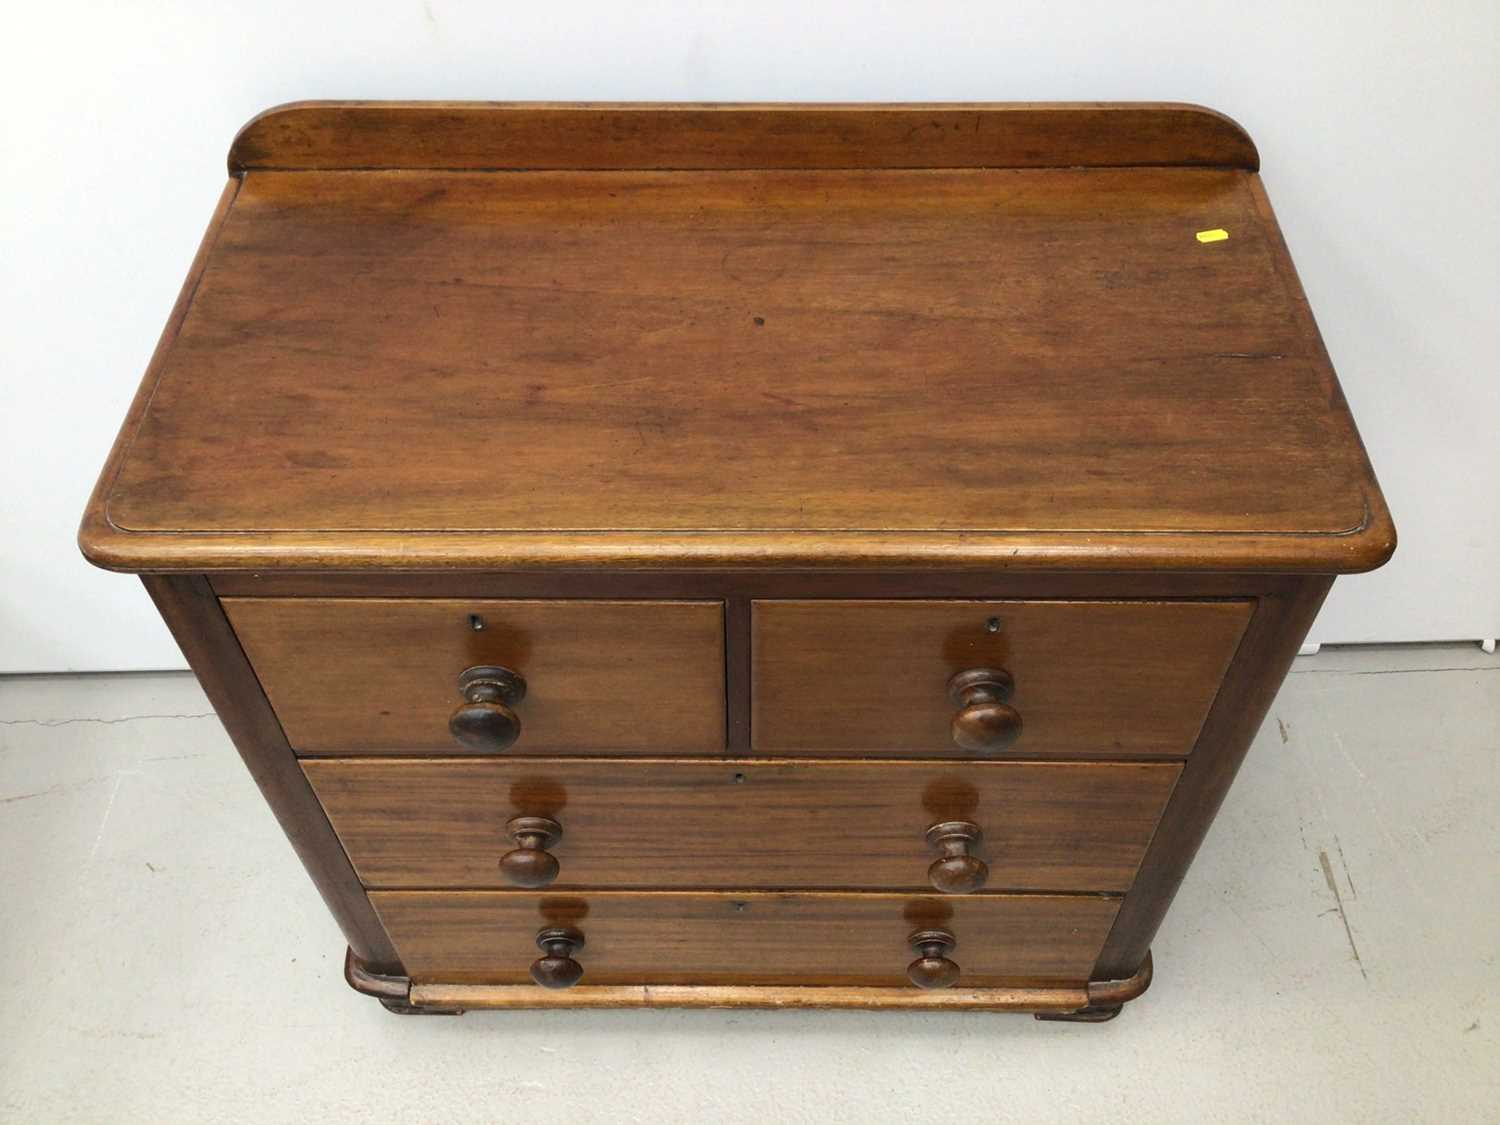 Victorian mahogany chest of two short and two long drawers 89cm wide x 46cm deep x 90 cm high - Image 2 of 5